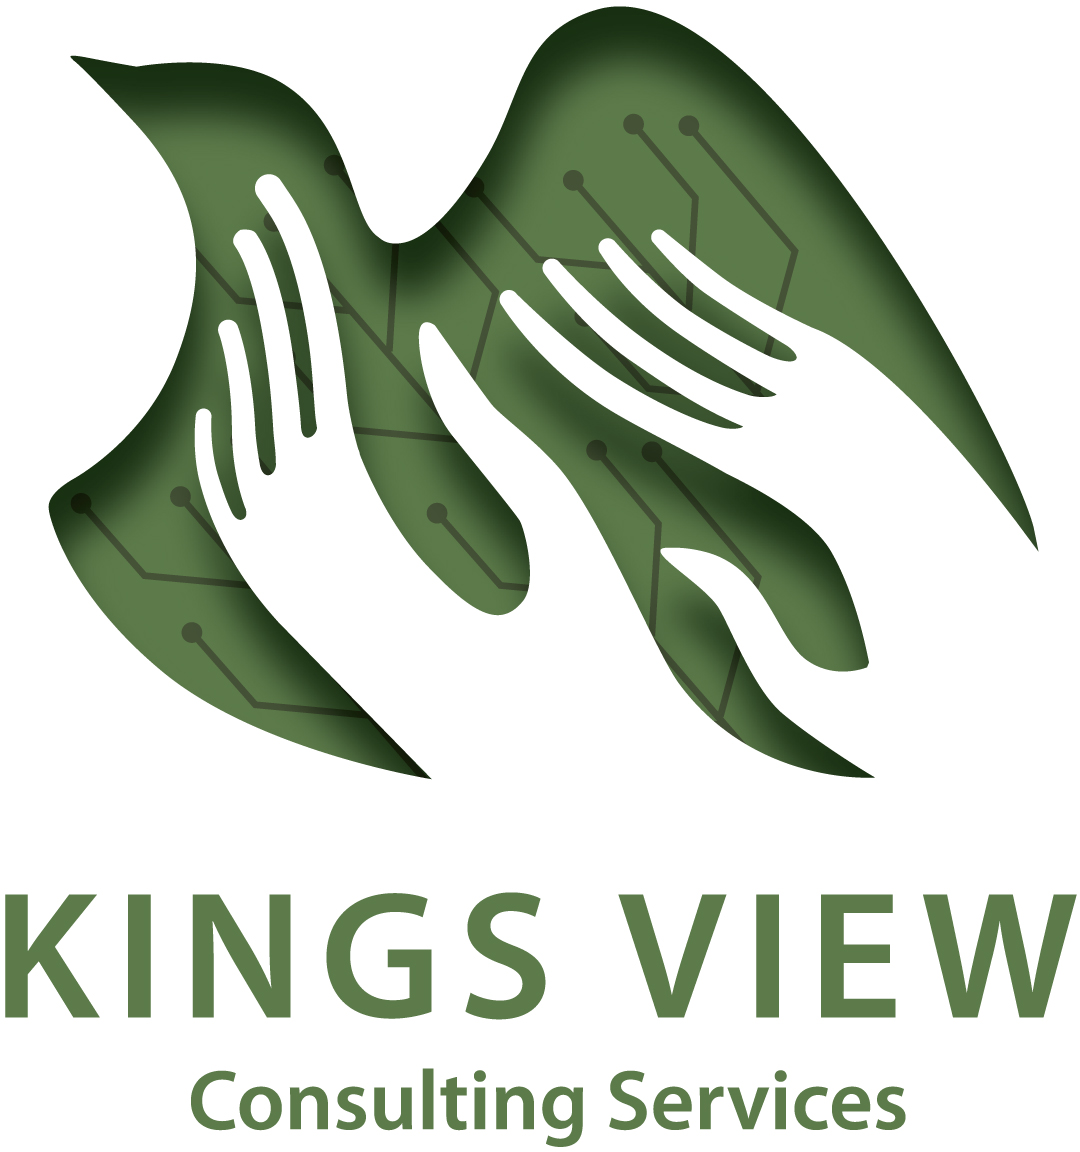 Kings View Consulting Services